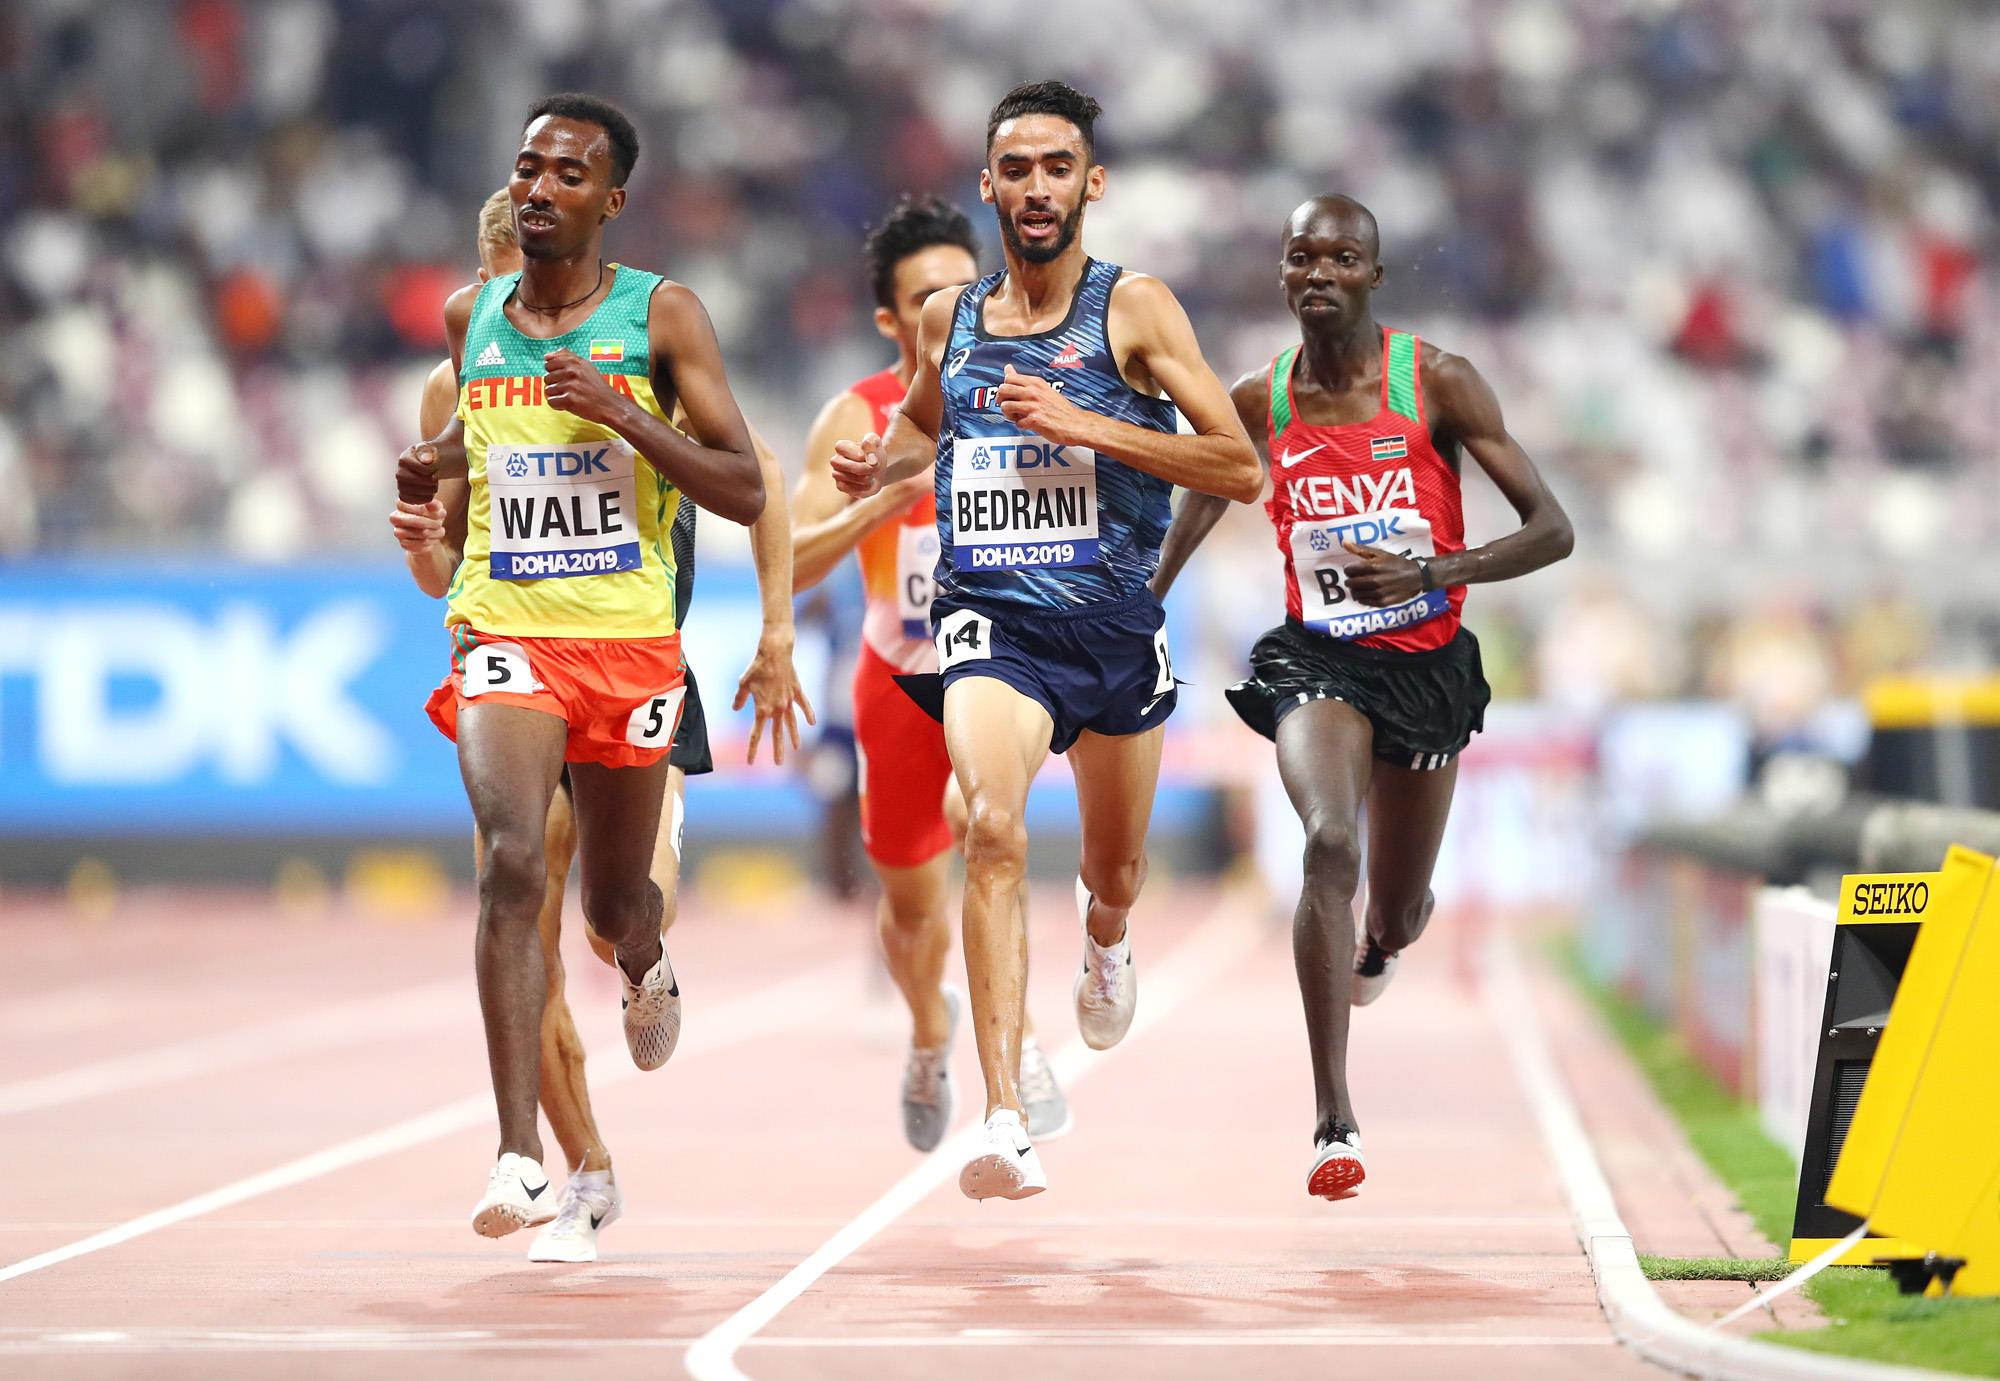 Action from the men's steeplechase at the World Championships (Getty Images)